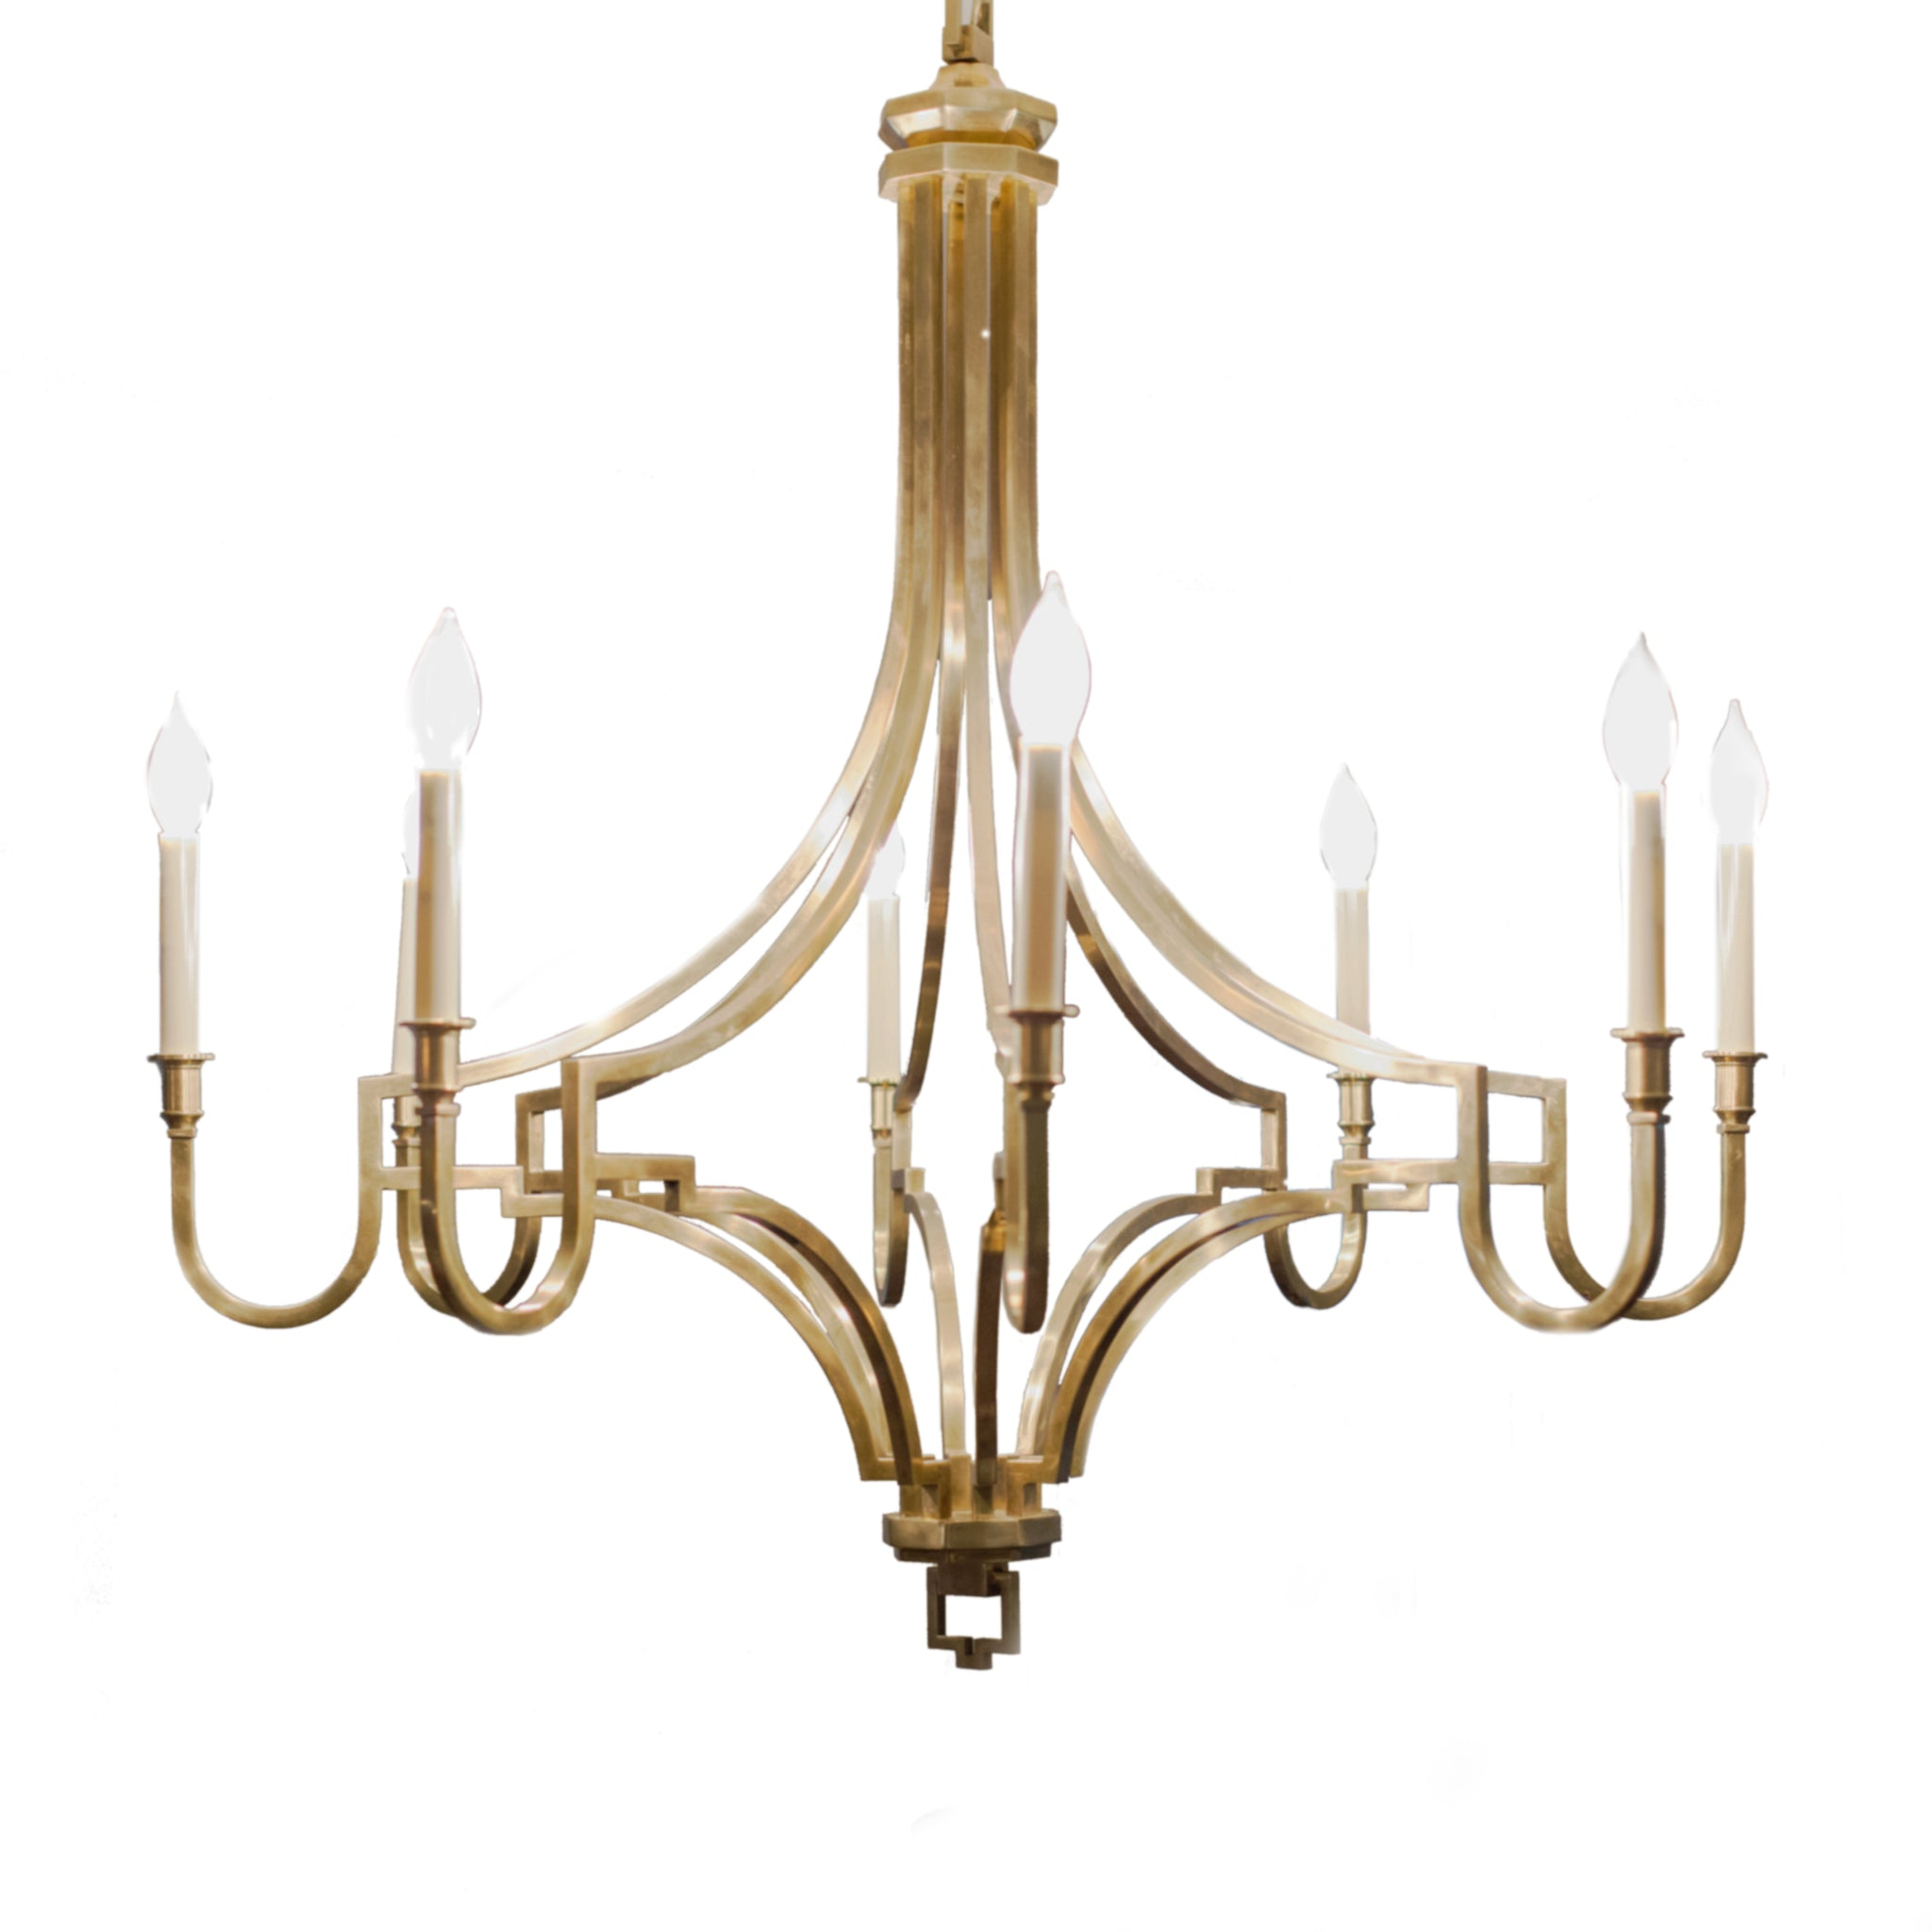 Mykonos large chandelier in antique burnished brass